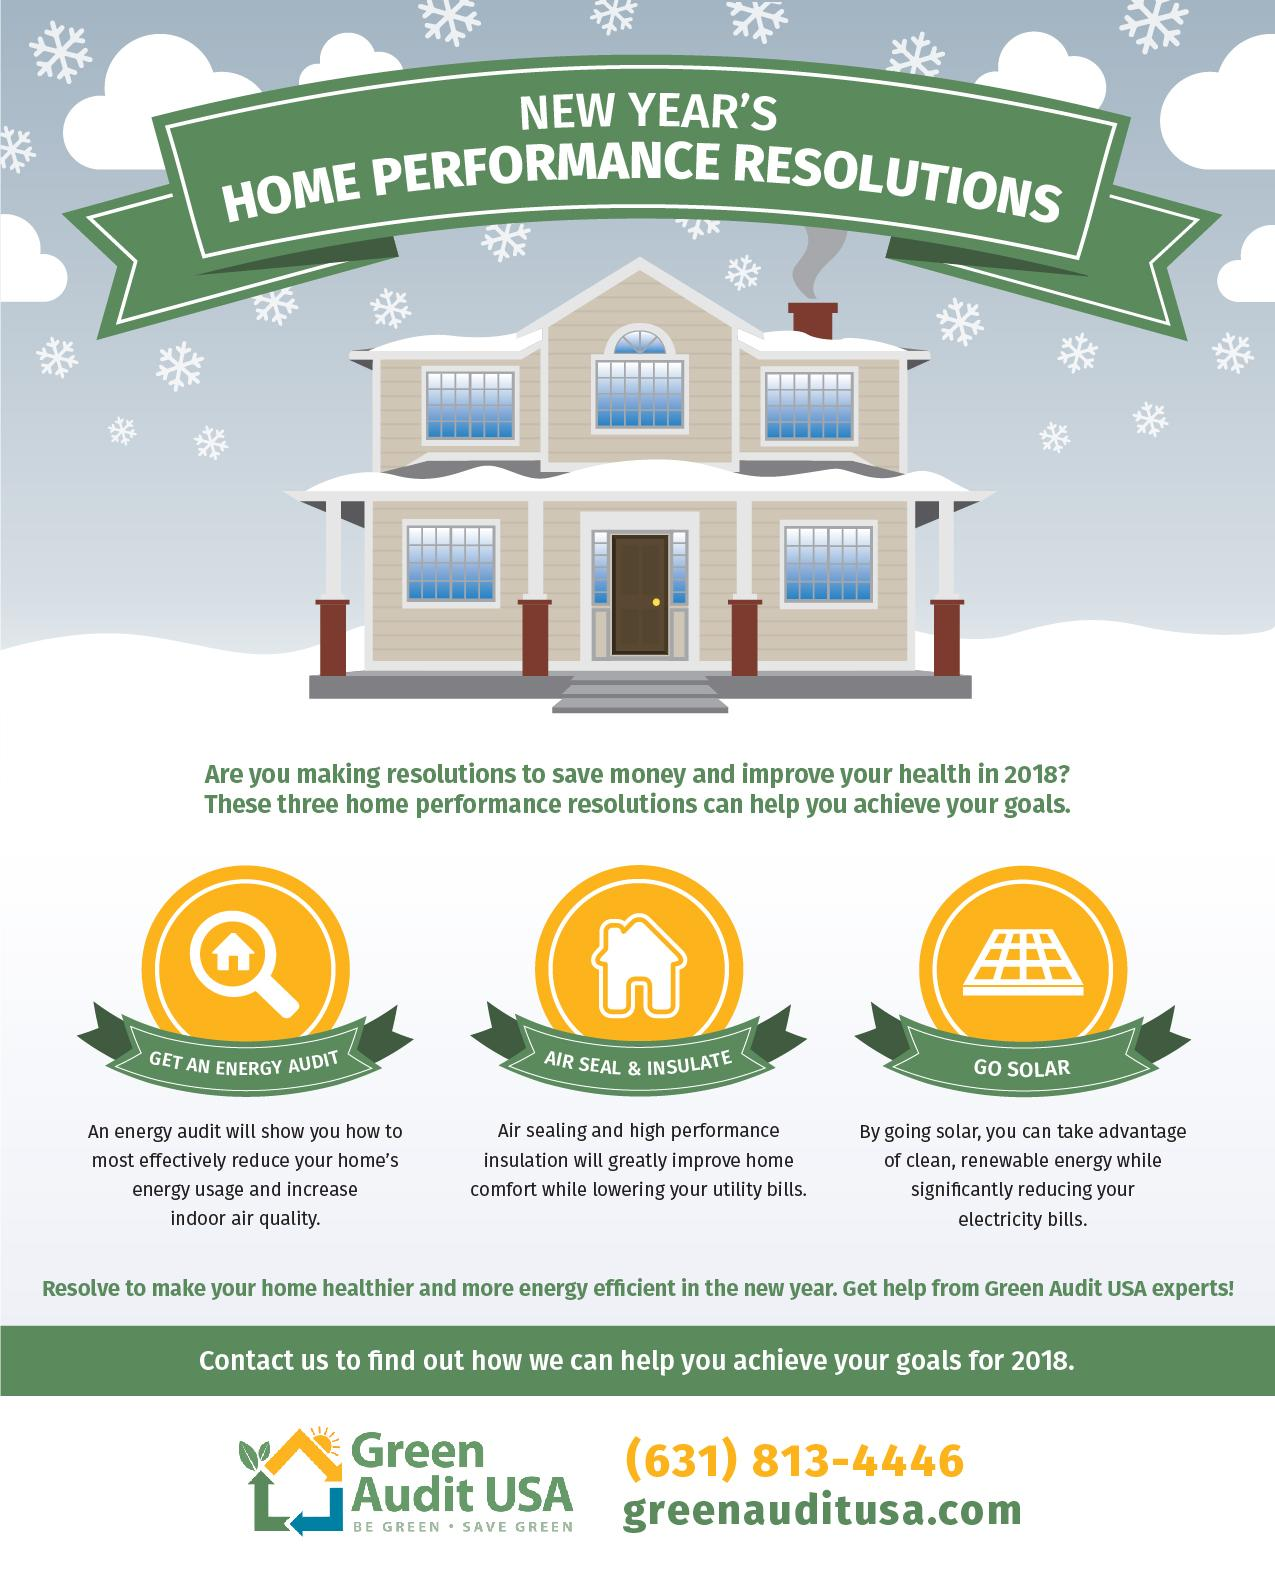 New Year's Home Performance Resolutions, green audit usa, NY, energy aduit, air seal, insulation, solar